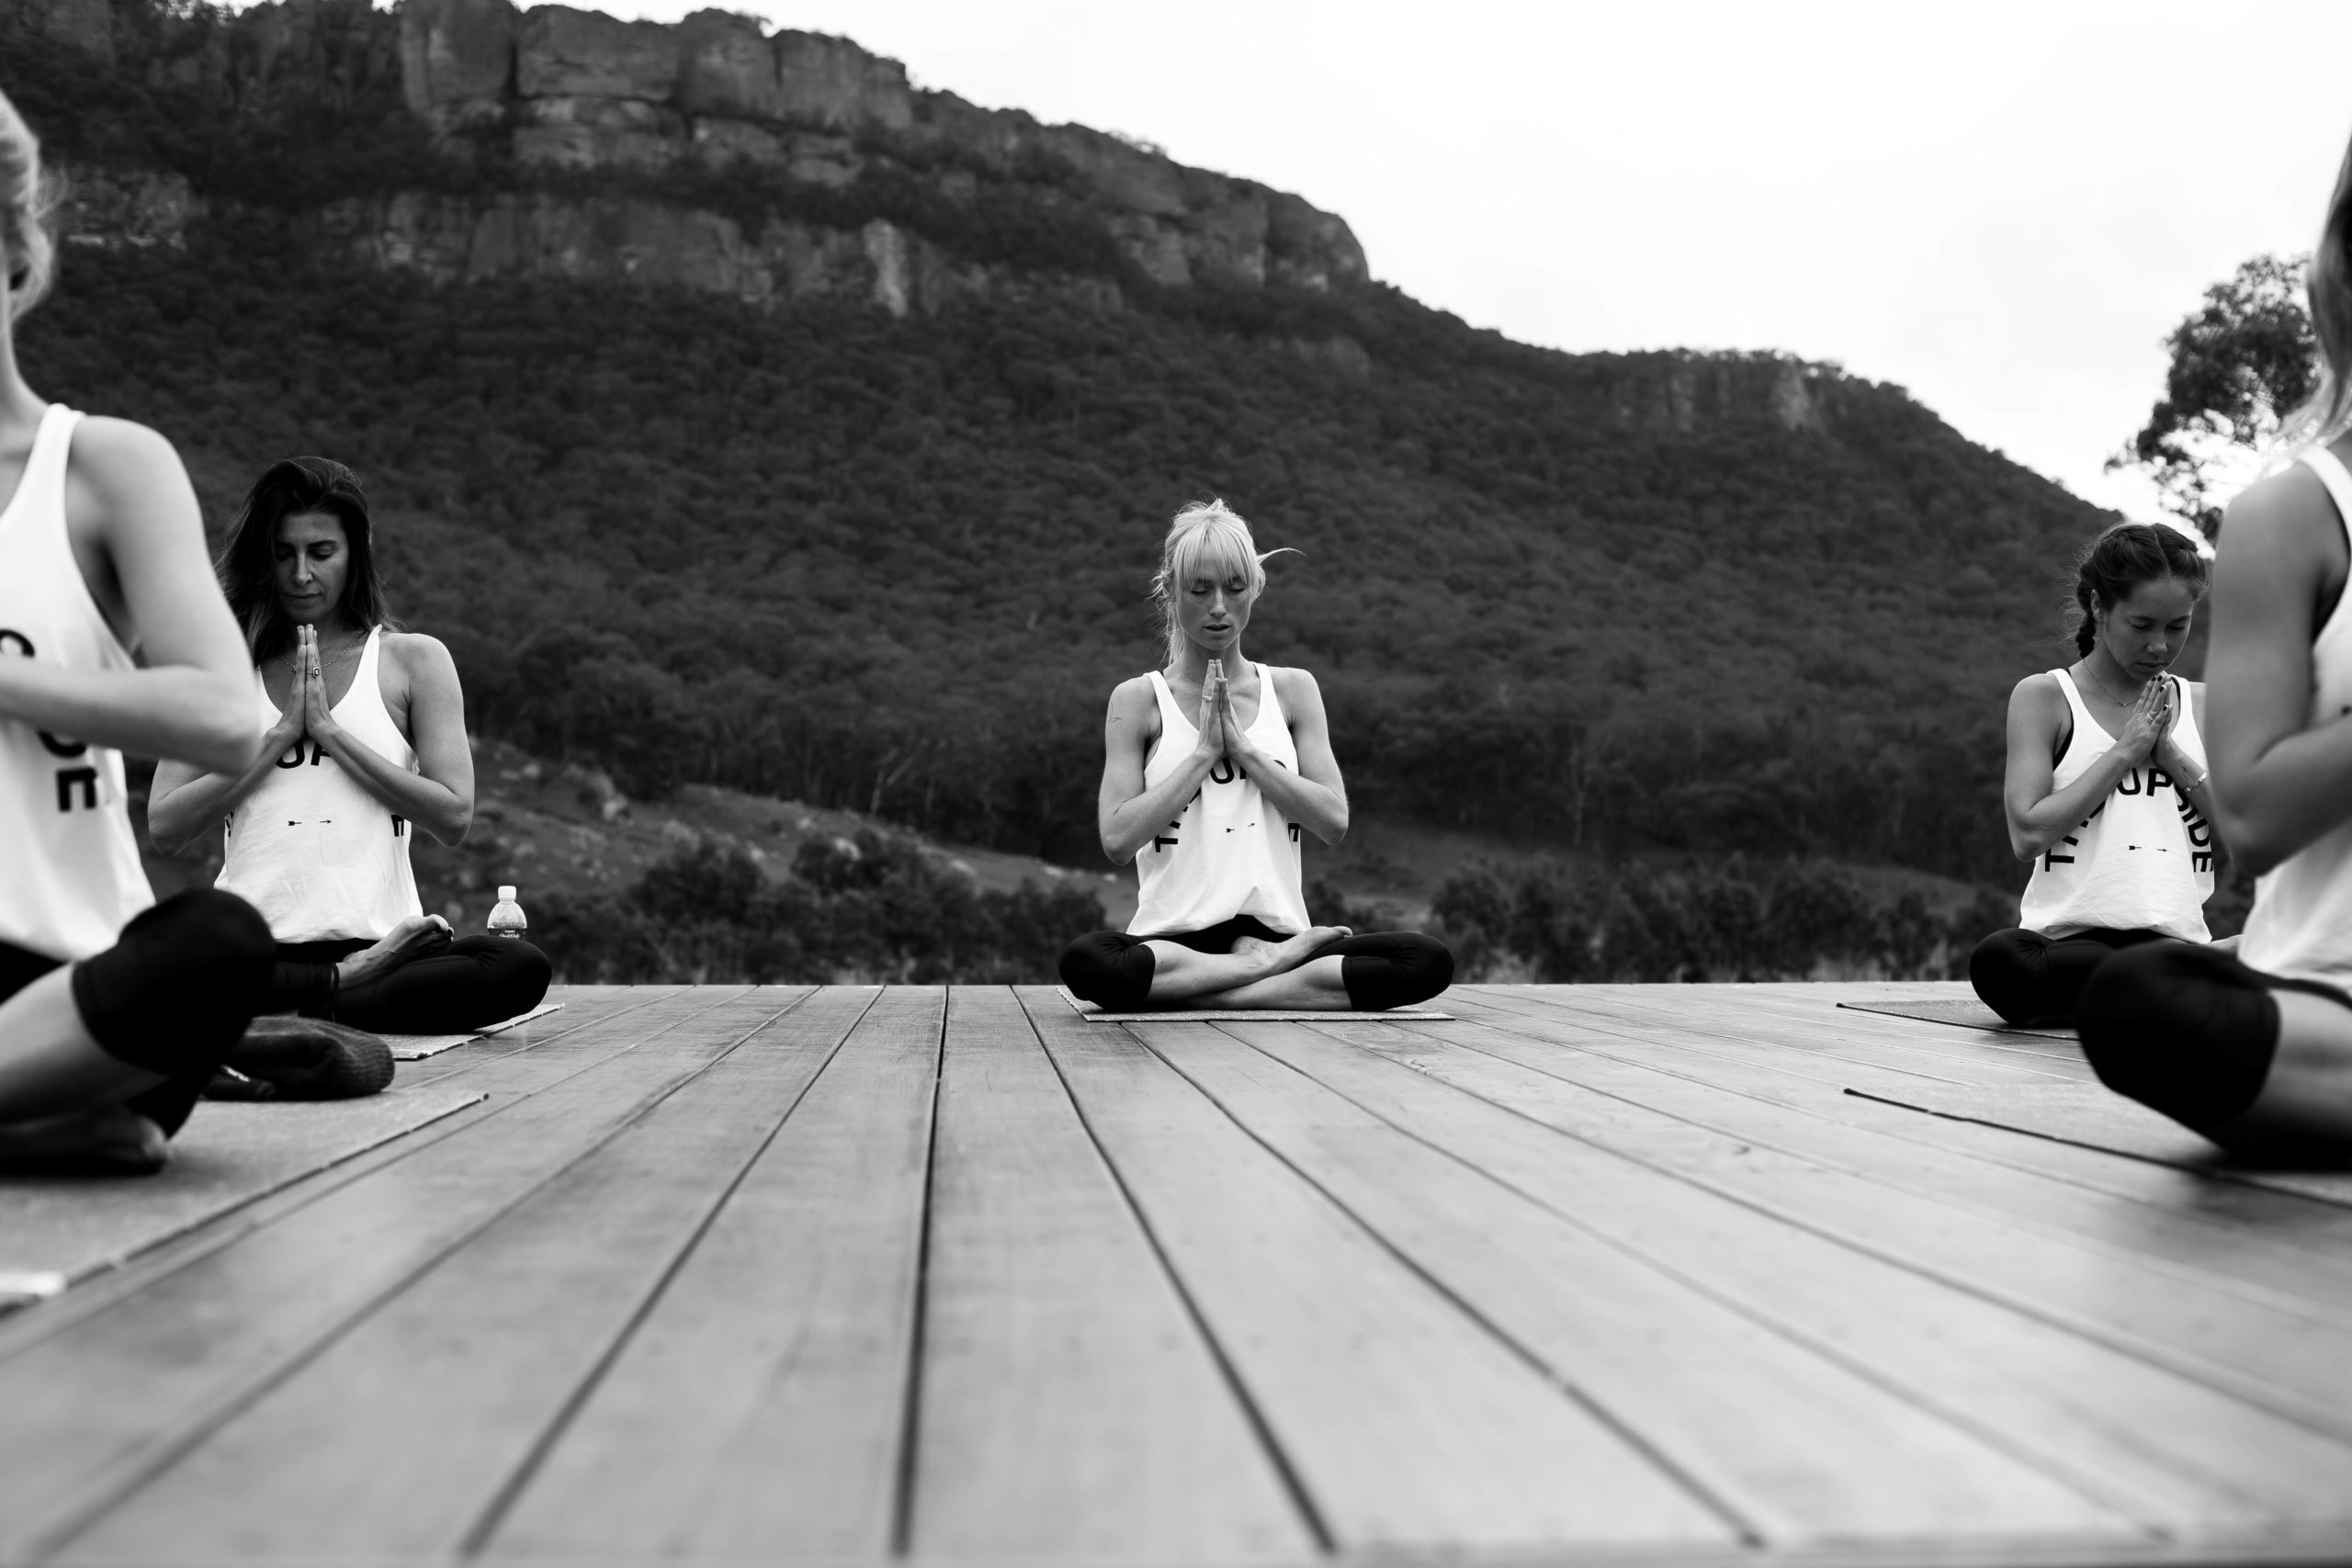 Yoga & Meditation at Wolgan Valley 23 & 24 Nov